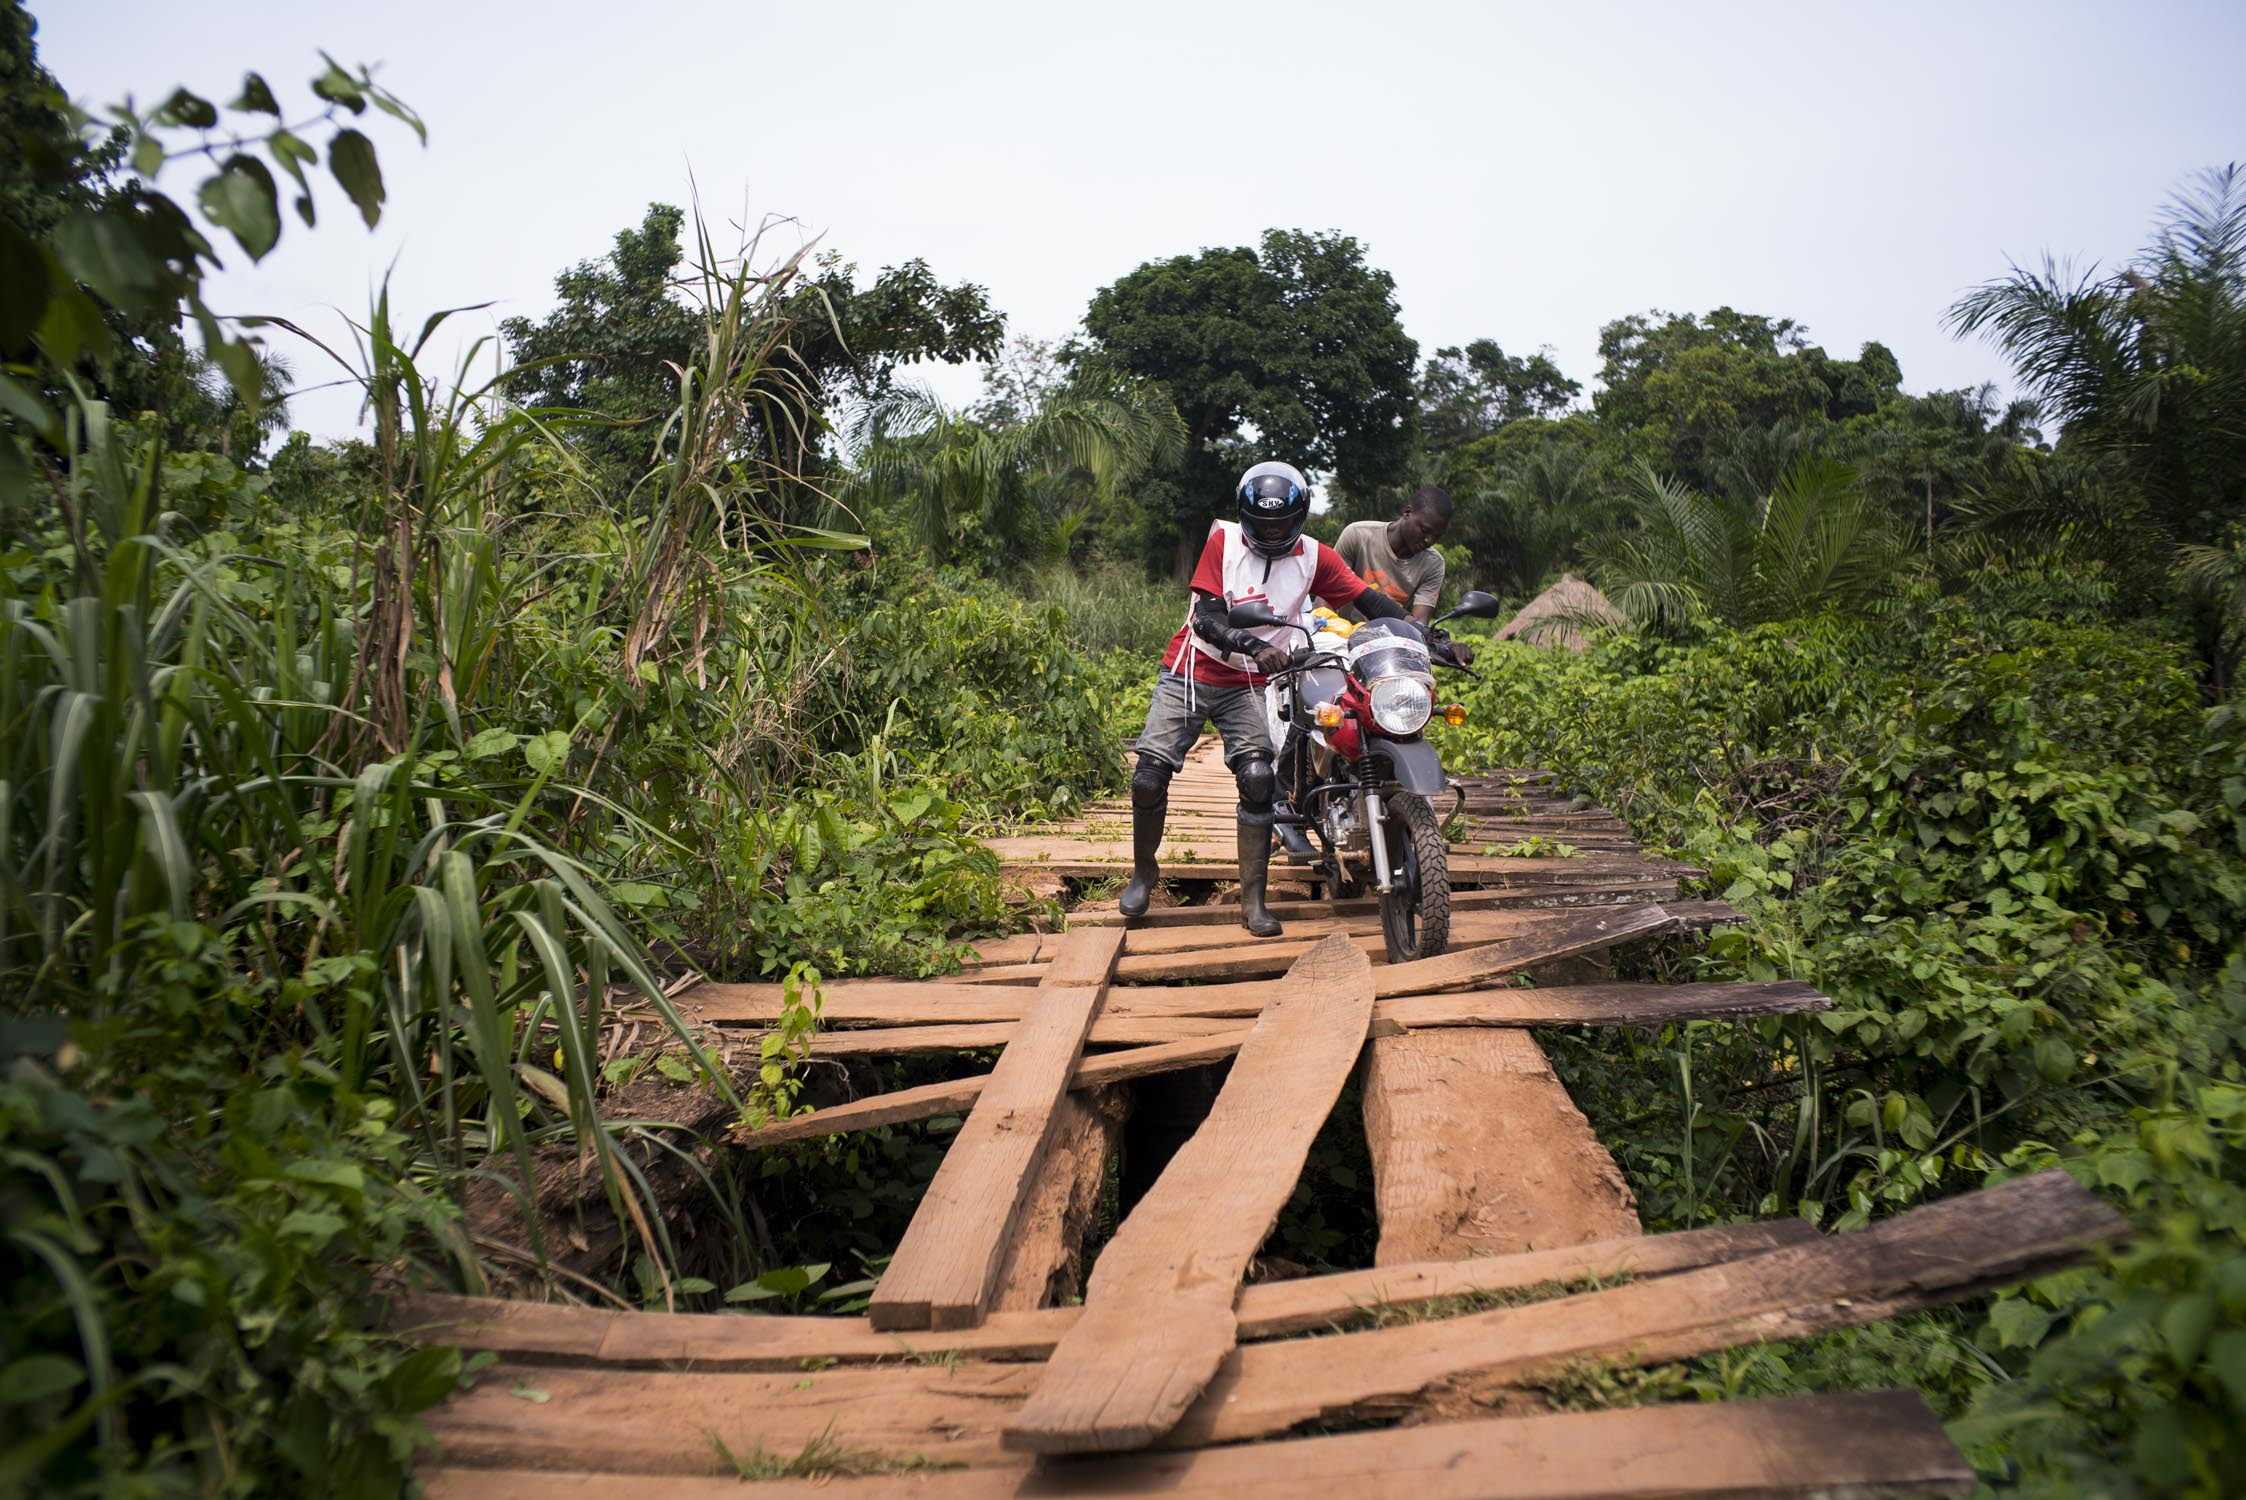 A MSF driver struggles to push his motorbike over a bridge on the route to the health center in the village of Nzeret, the epicenter of a measles epidemic that spread through this remote northern area of Democratic Republic of the Congo (DRC) in early 2016. The bridge had been in even worse shape until MSF purchased additional wooden planks and hired a crew of local workers to fortify it earlier that day, a necessary measure in order to carry out their planned 5-day measles vaccination campaign. MSF had named measles among the top five epidemics that could erupt or worsen in 2016. DRC has the fifth highest under-five mortality rate in the world. An estimated 465,000 children in DRC die each year of preventable diseases. Nzeret, Bas-Uele province, Democratic Republic of the Congo. May 27, 2016